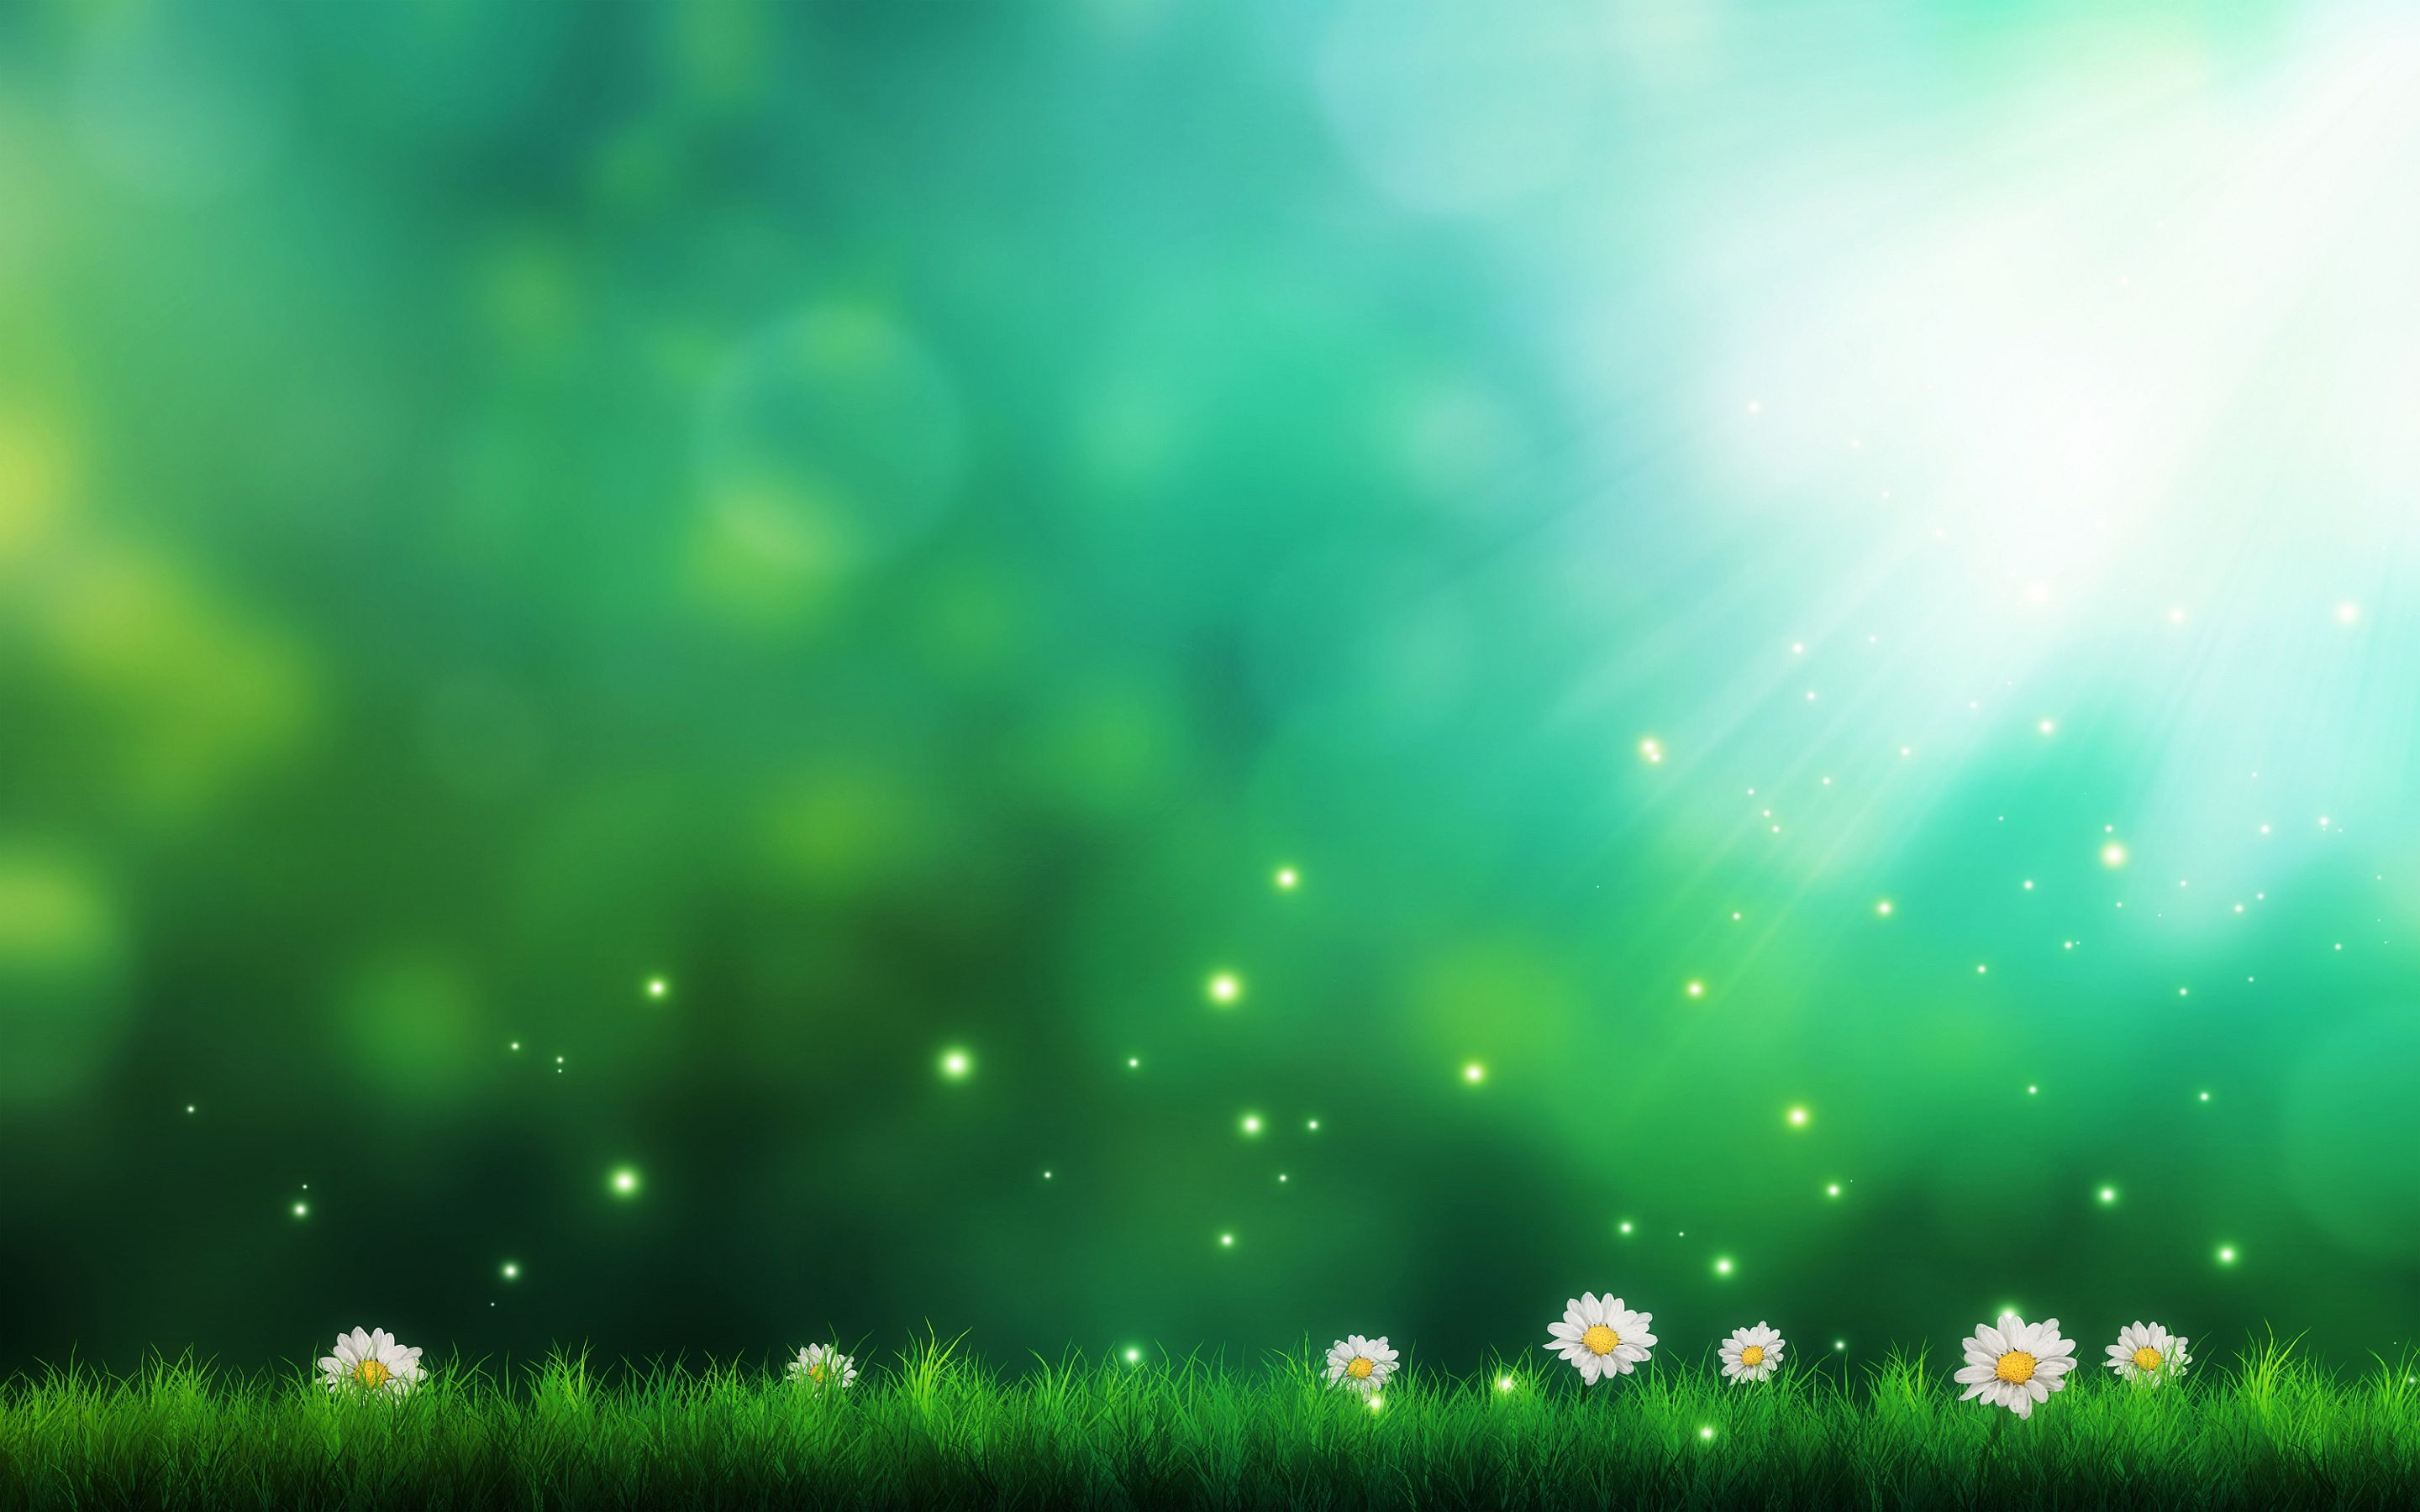 Green Background Pictures 17225 2880x1800 Px Hdwallsource Com Nature Backgrounds Iphone Green Backgrounds Nature Backgrounds